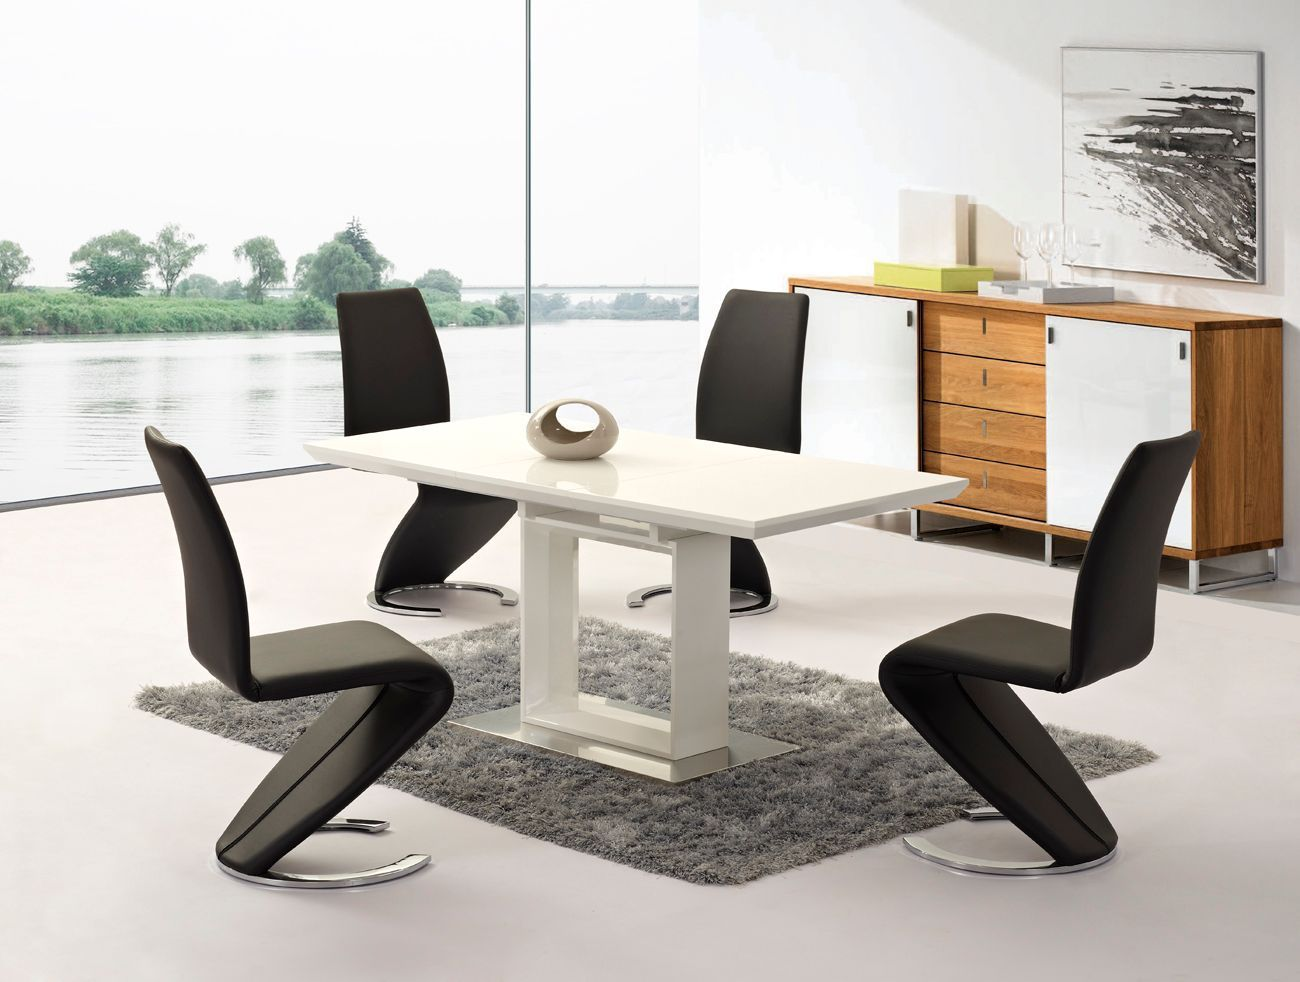 Extending white high gloss dining table and 4 chairs set ebay - White extending dining table and chairs ...